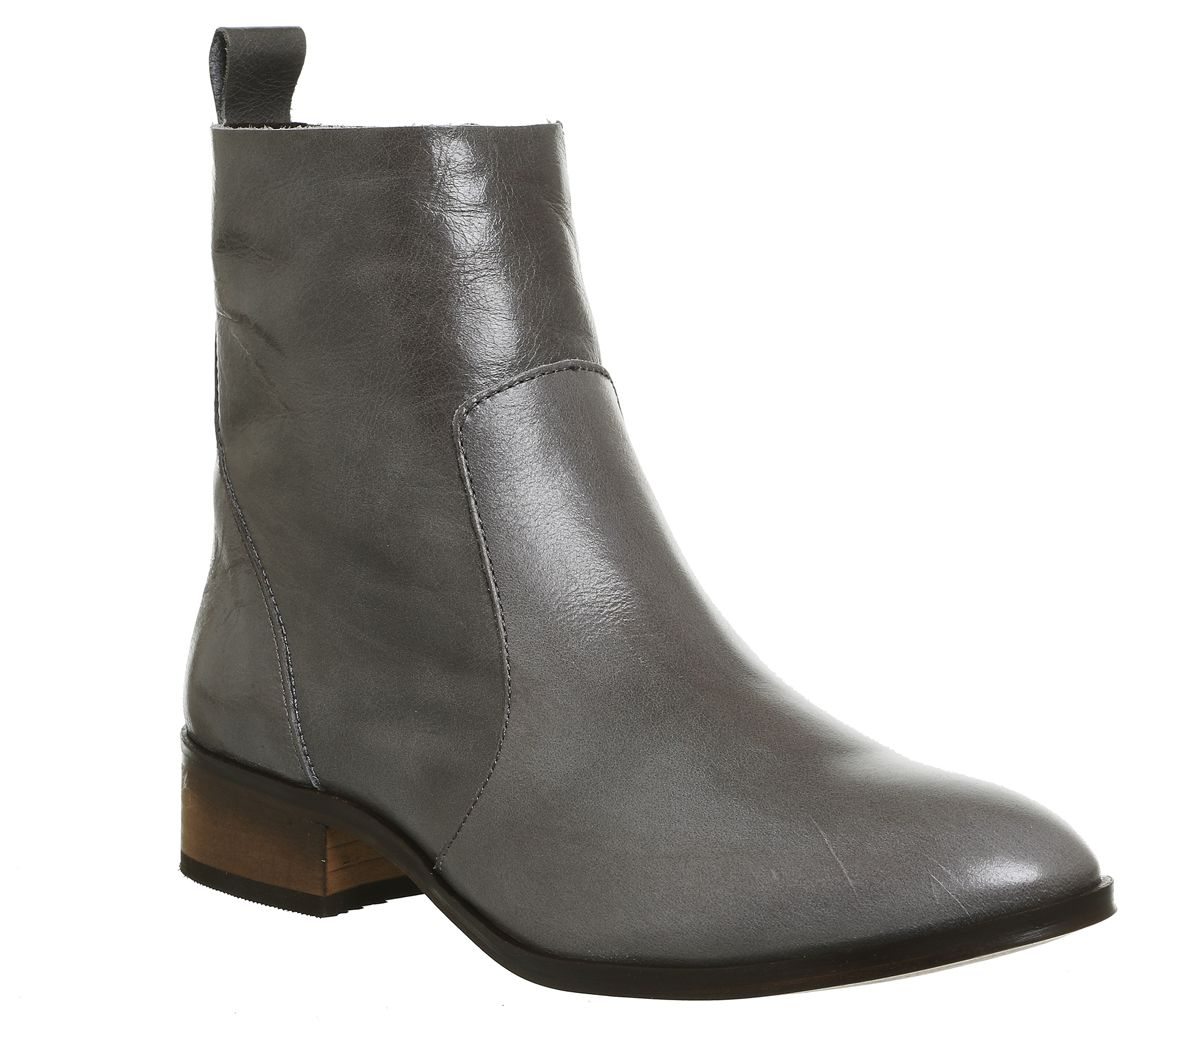 3c59aafcb6342 Office Ashleigh Flat Ankle Boots Grey Leather - Ankle Boots